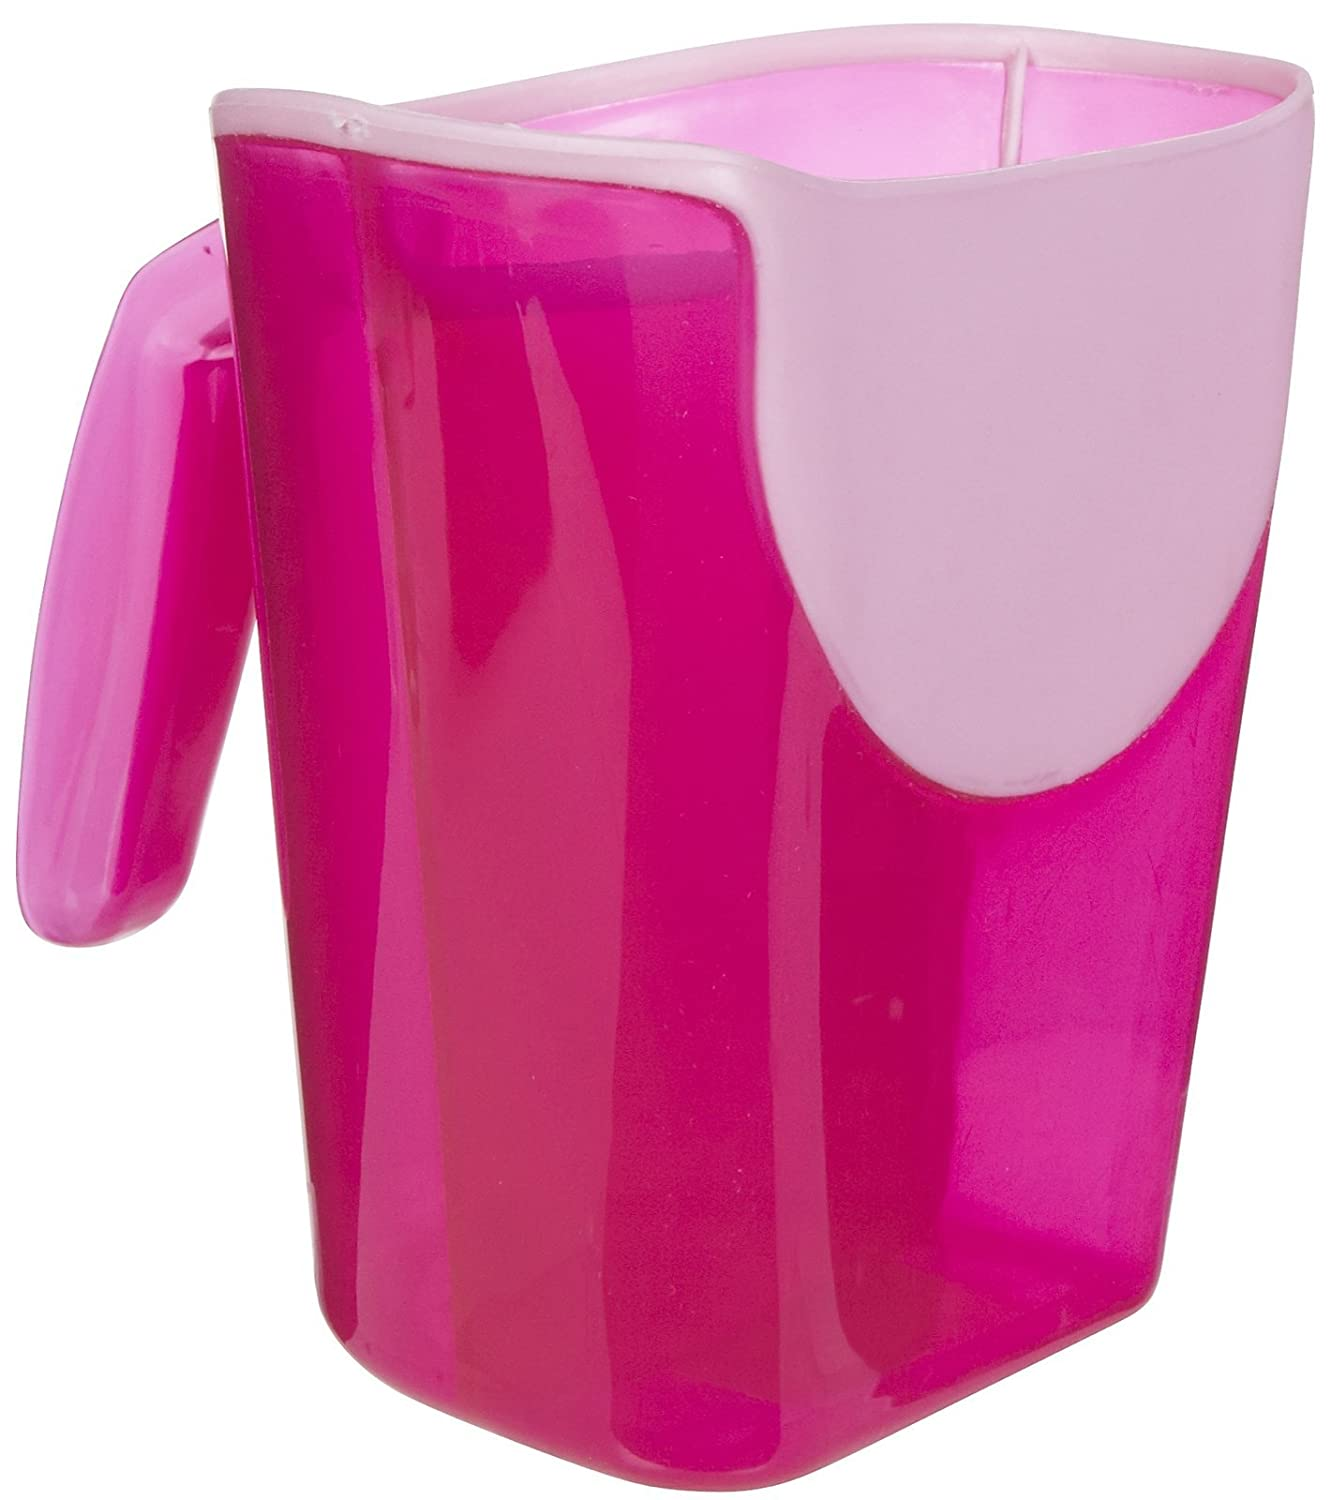 SC Products Shampoo Rinse Cup - Pink 4332395721